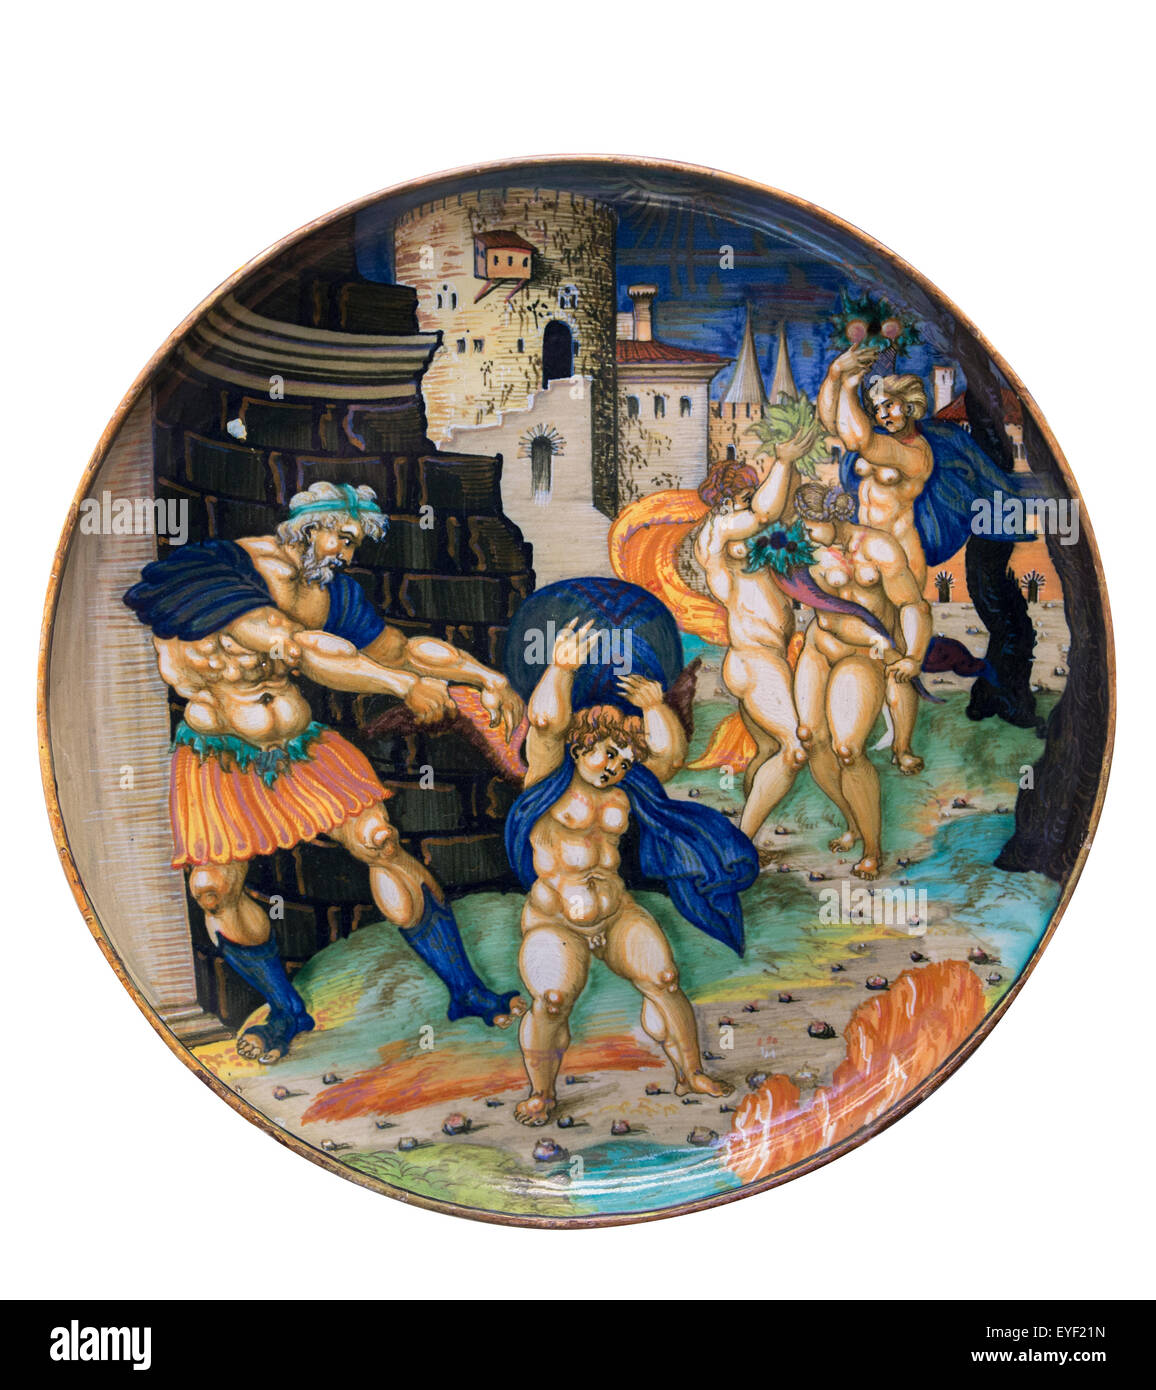 Dish, A political allegory. Inscribed by Guilio da Urbino 1534, probably painted in Urbino, by a close follower - Stock Image